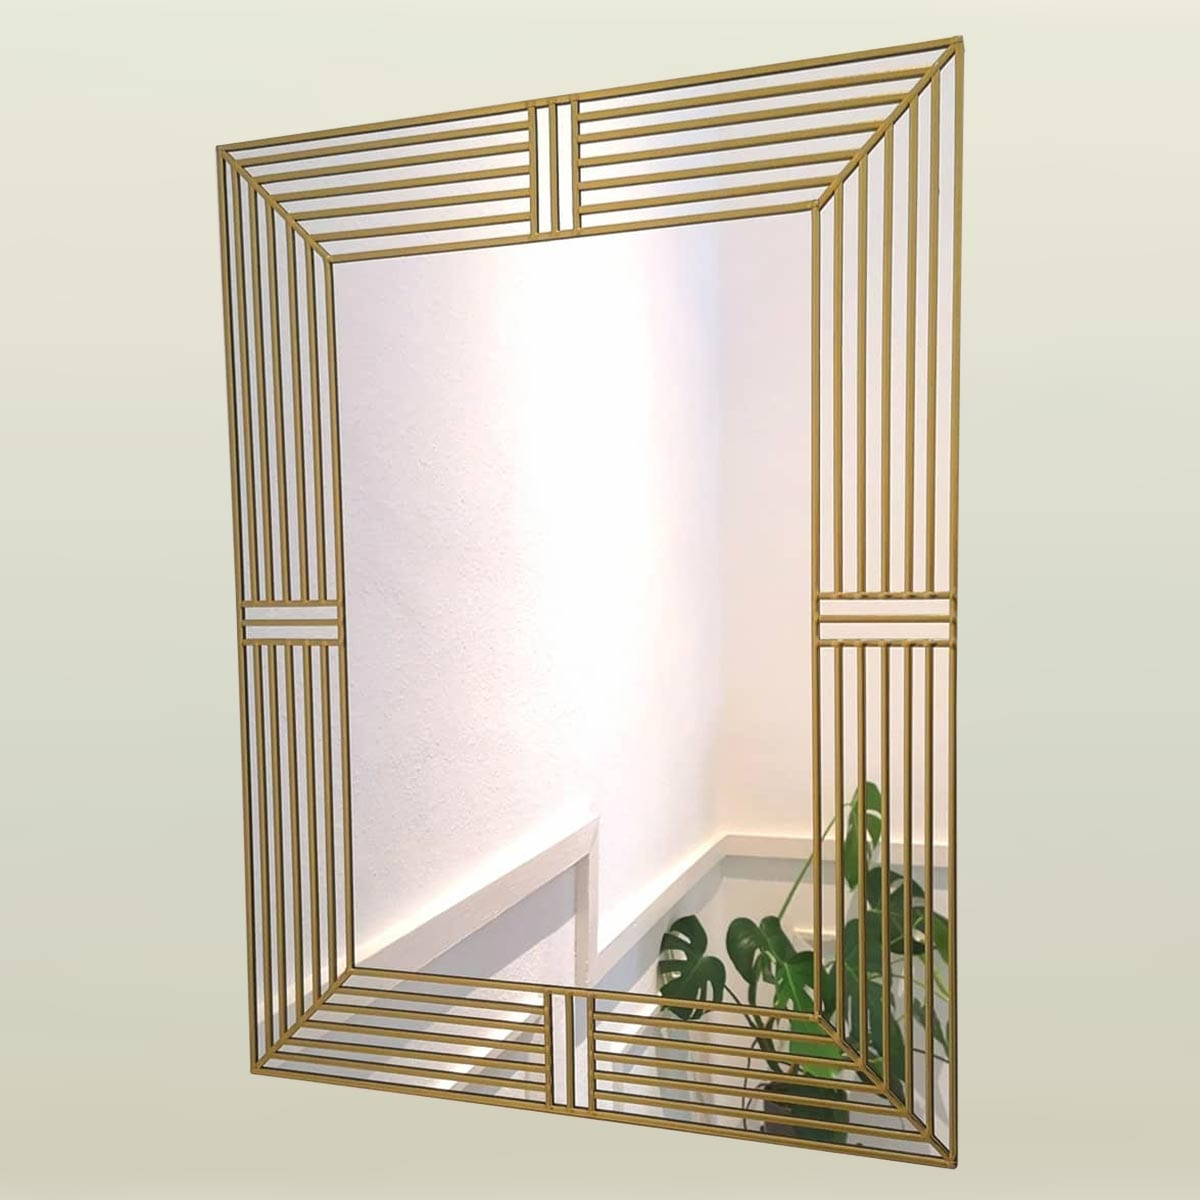 Most Recently Released Deco Wall Mirrors Intended For Art Deco Wall Mirror 61X91Cm (2Ftx3Ft) (View 15 of 20)